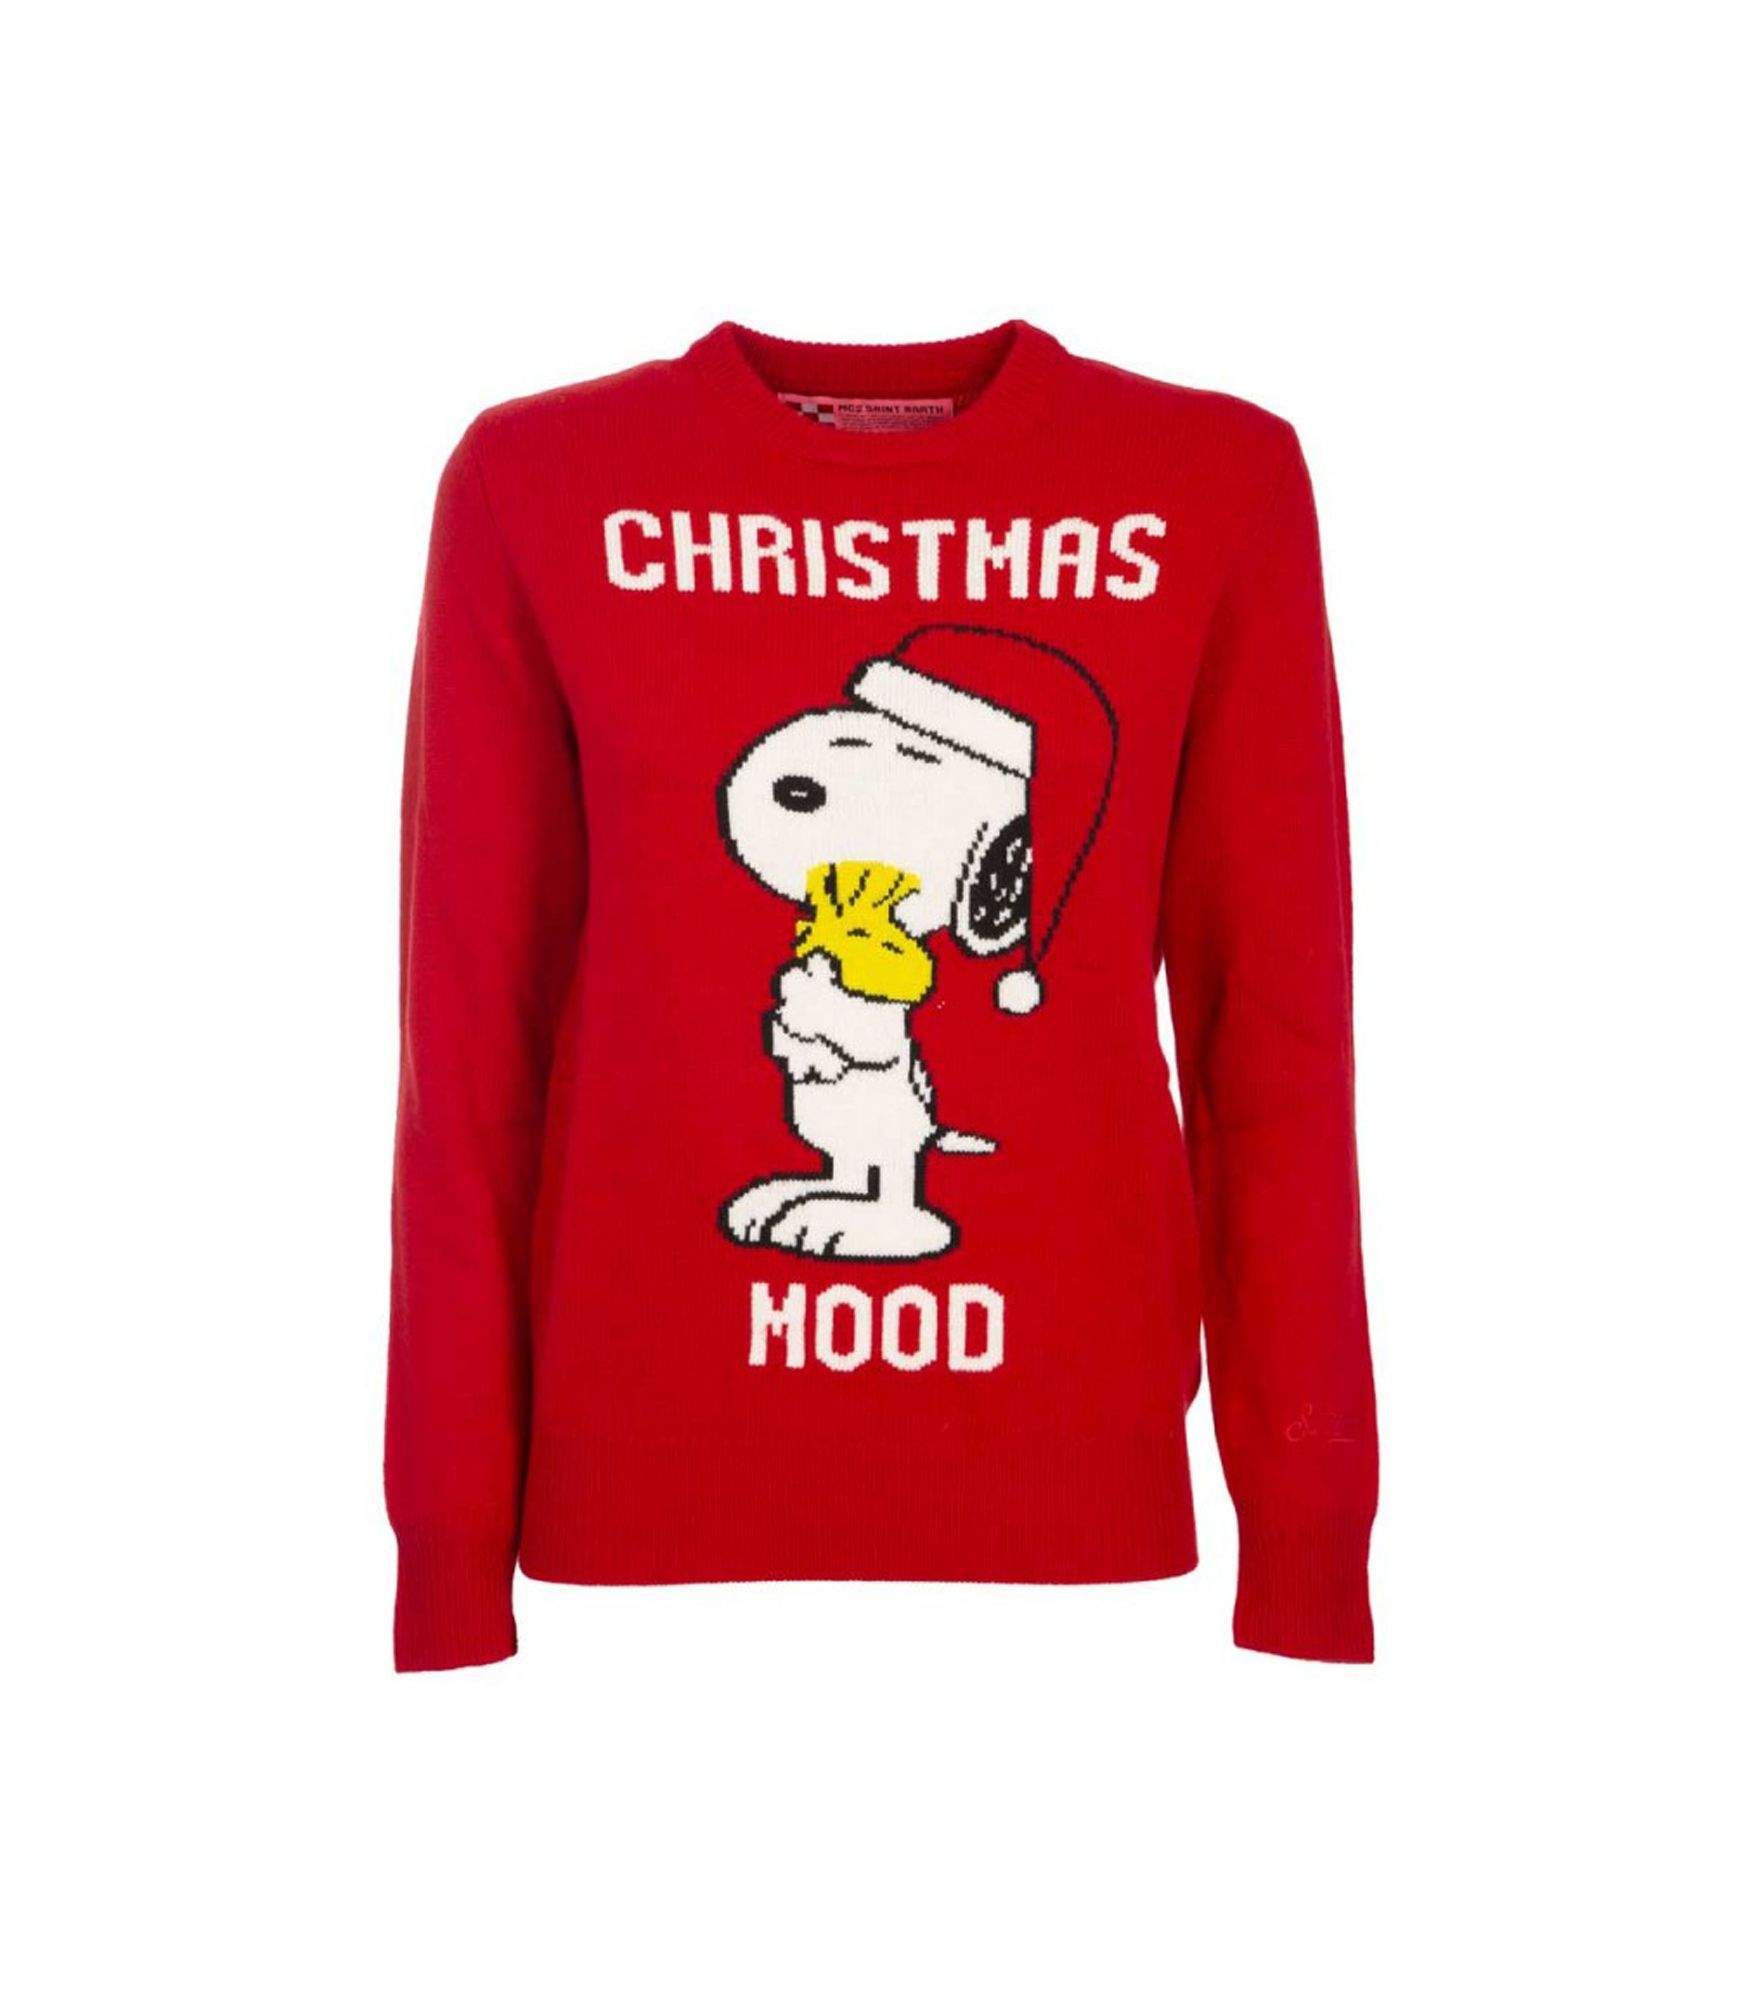 Saint Barth x mas Snoopy